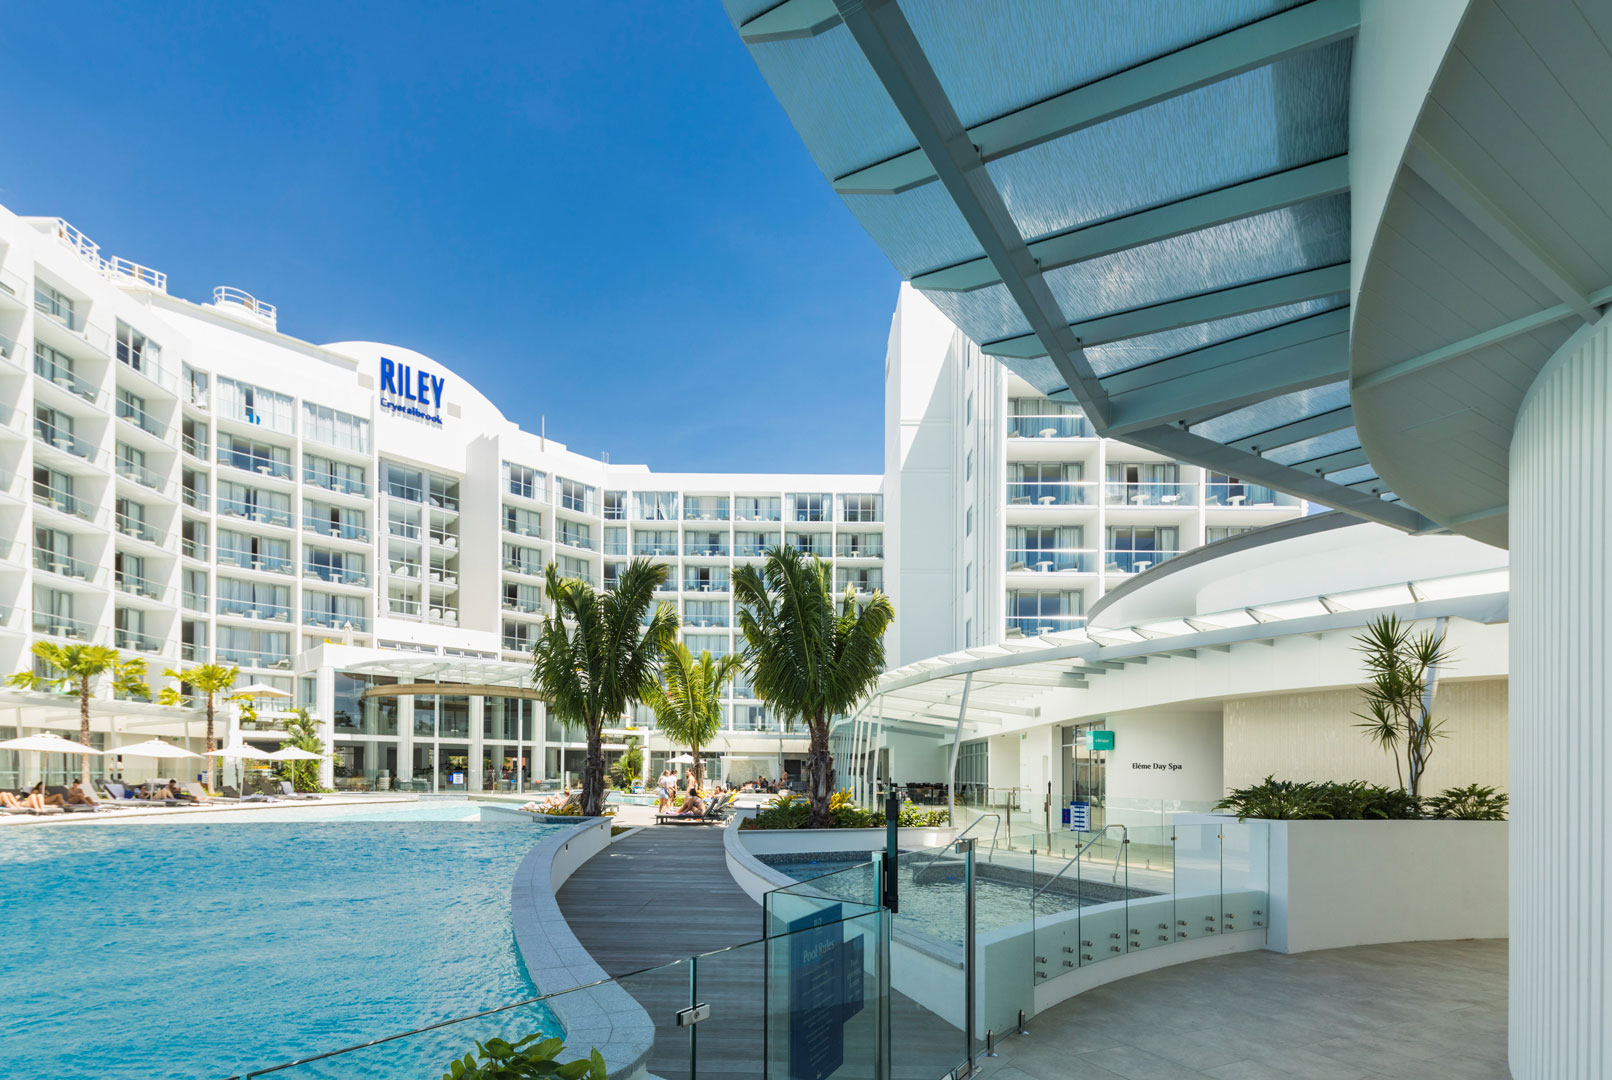 Photography of glass roof panels at the Riley Hotel, Cairns for National Glass - 11 April 2019.